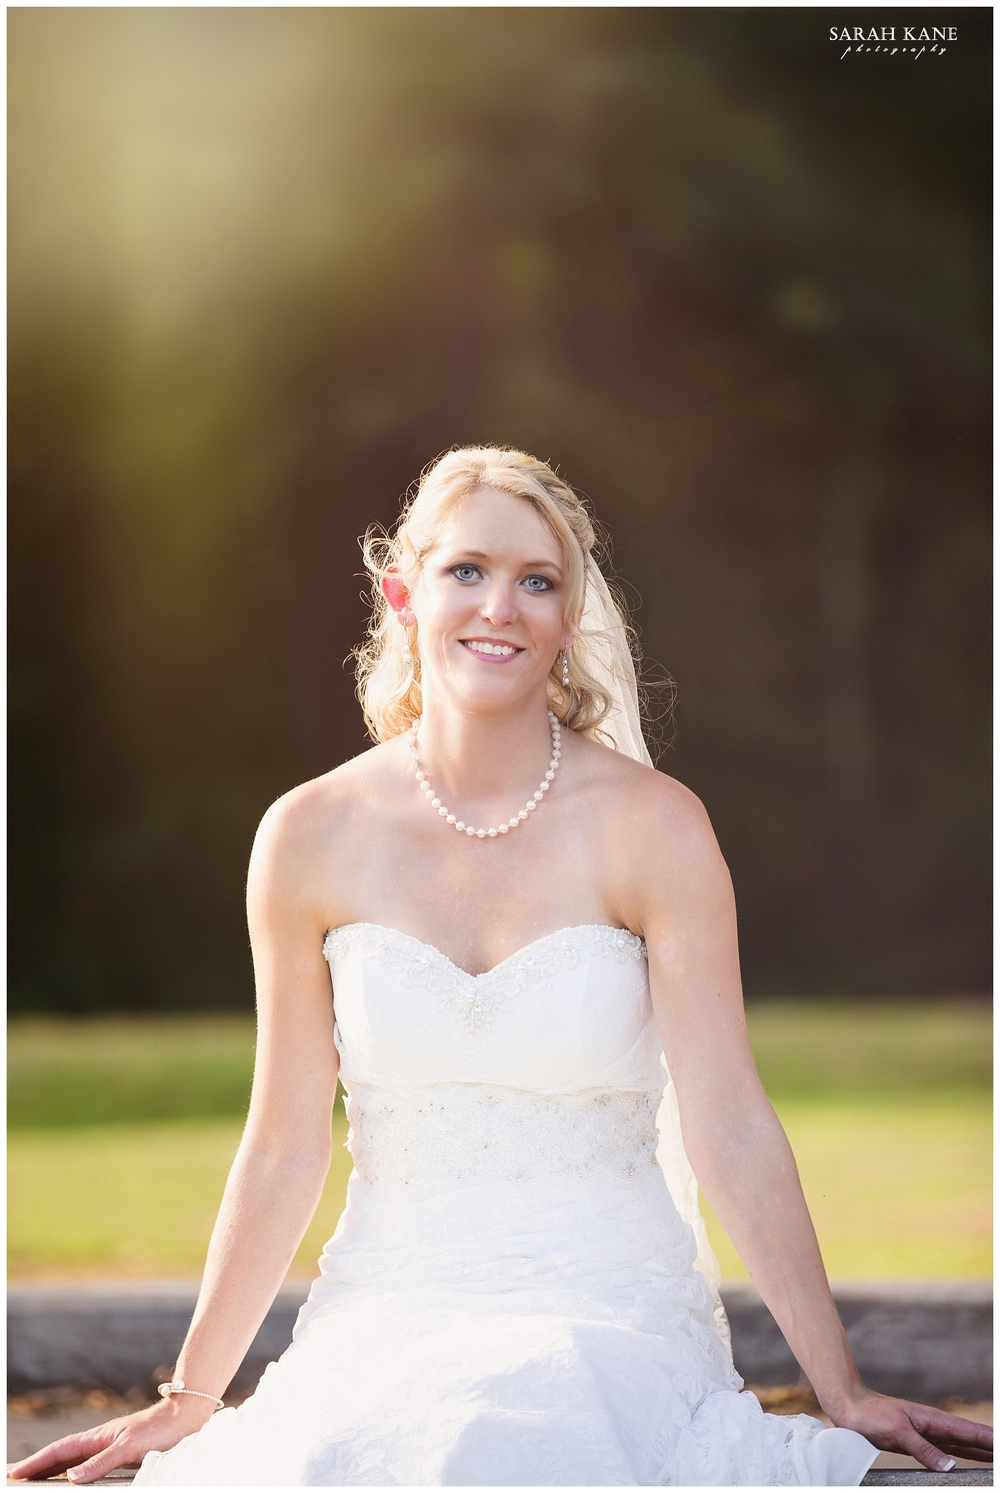 Blog - Petersburg VA Wedding - Sarah Kane Photography 006.JPG